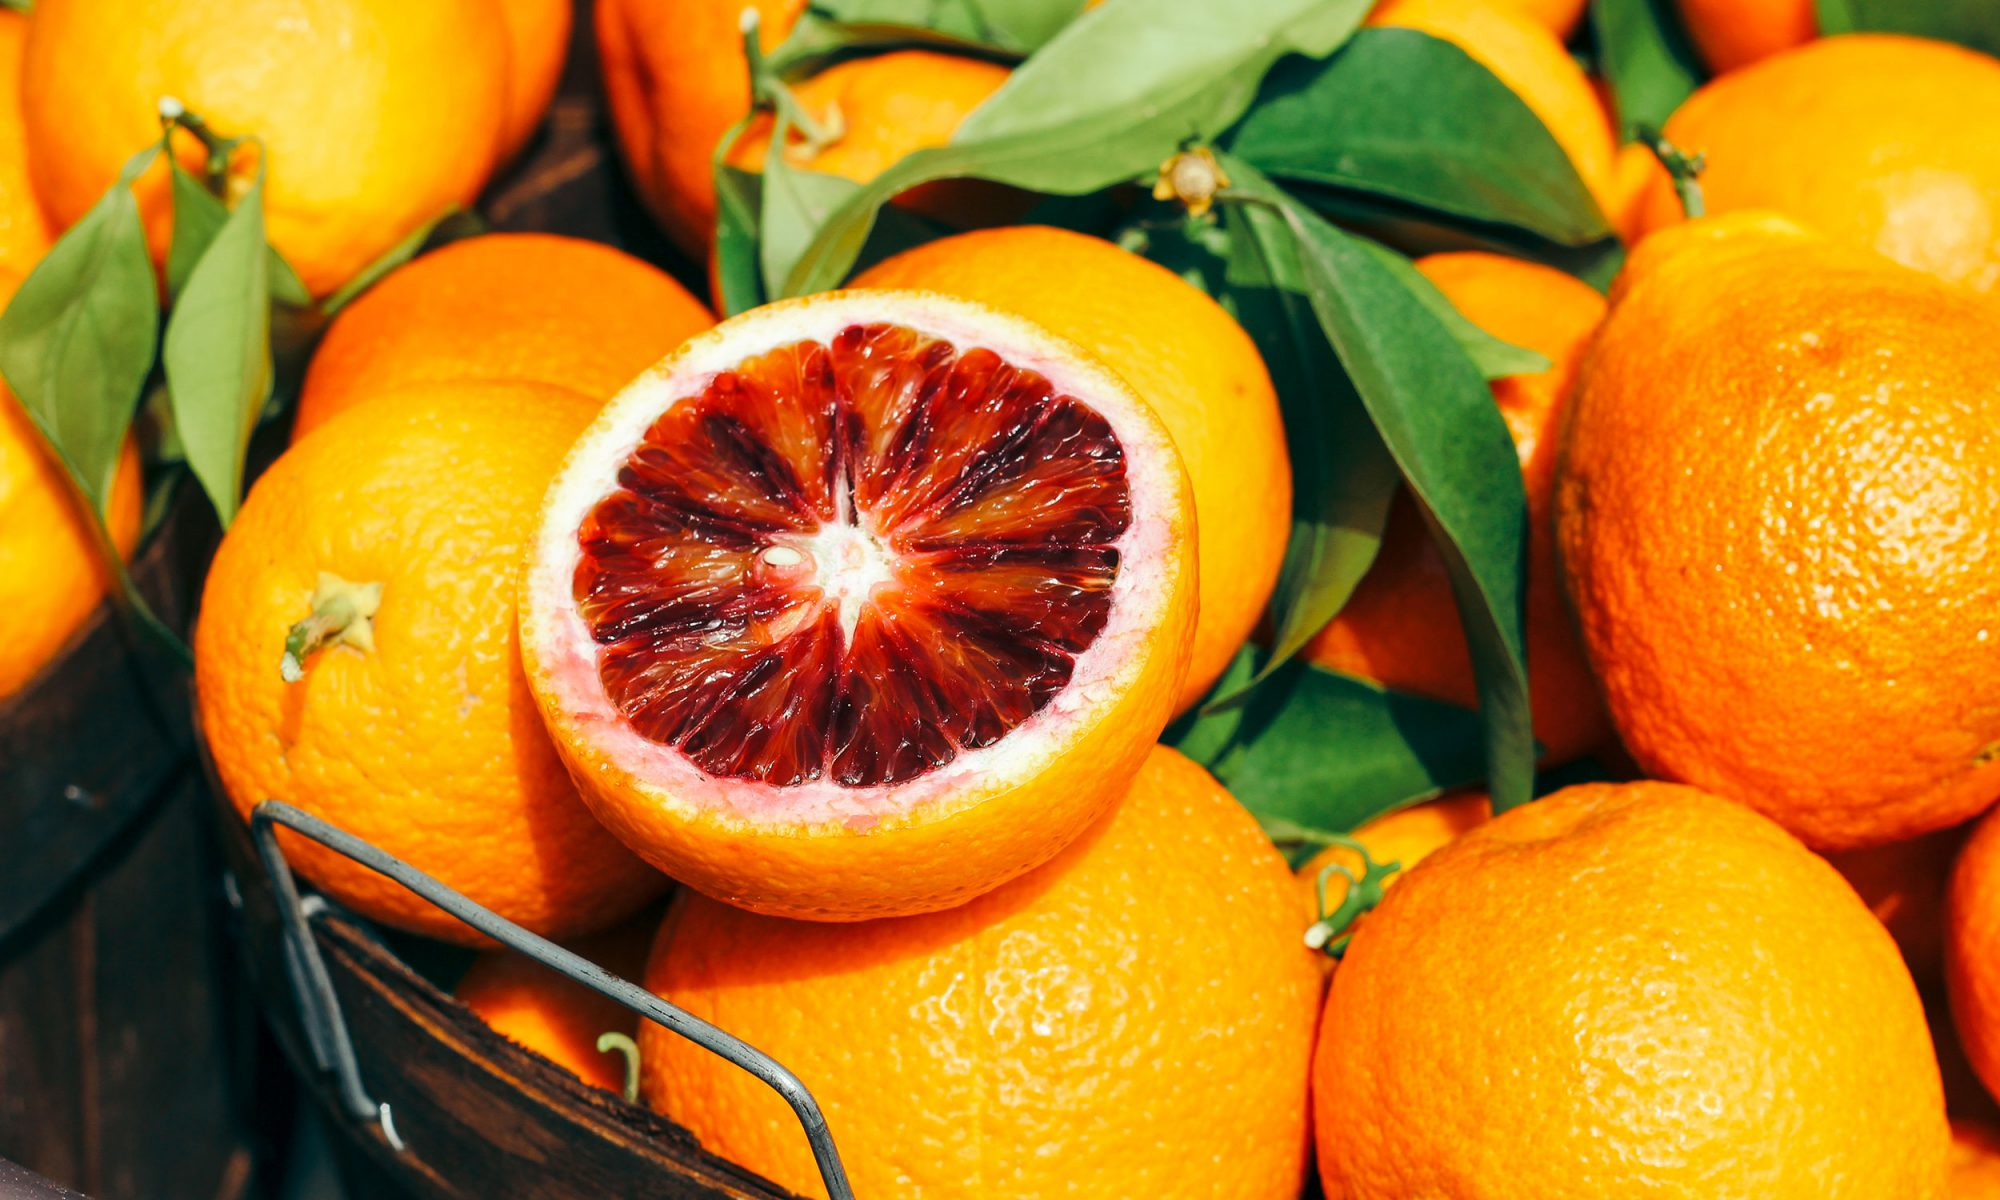 EC: Are Blood Oranges Naturally Red?